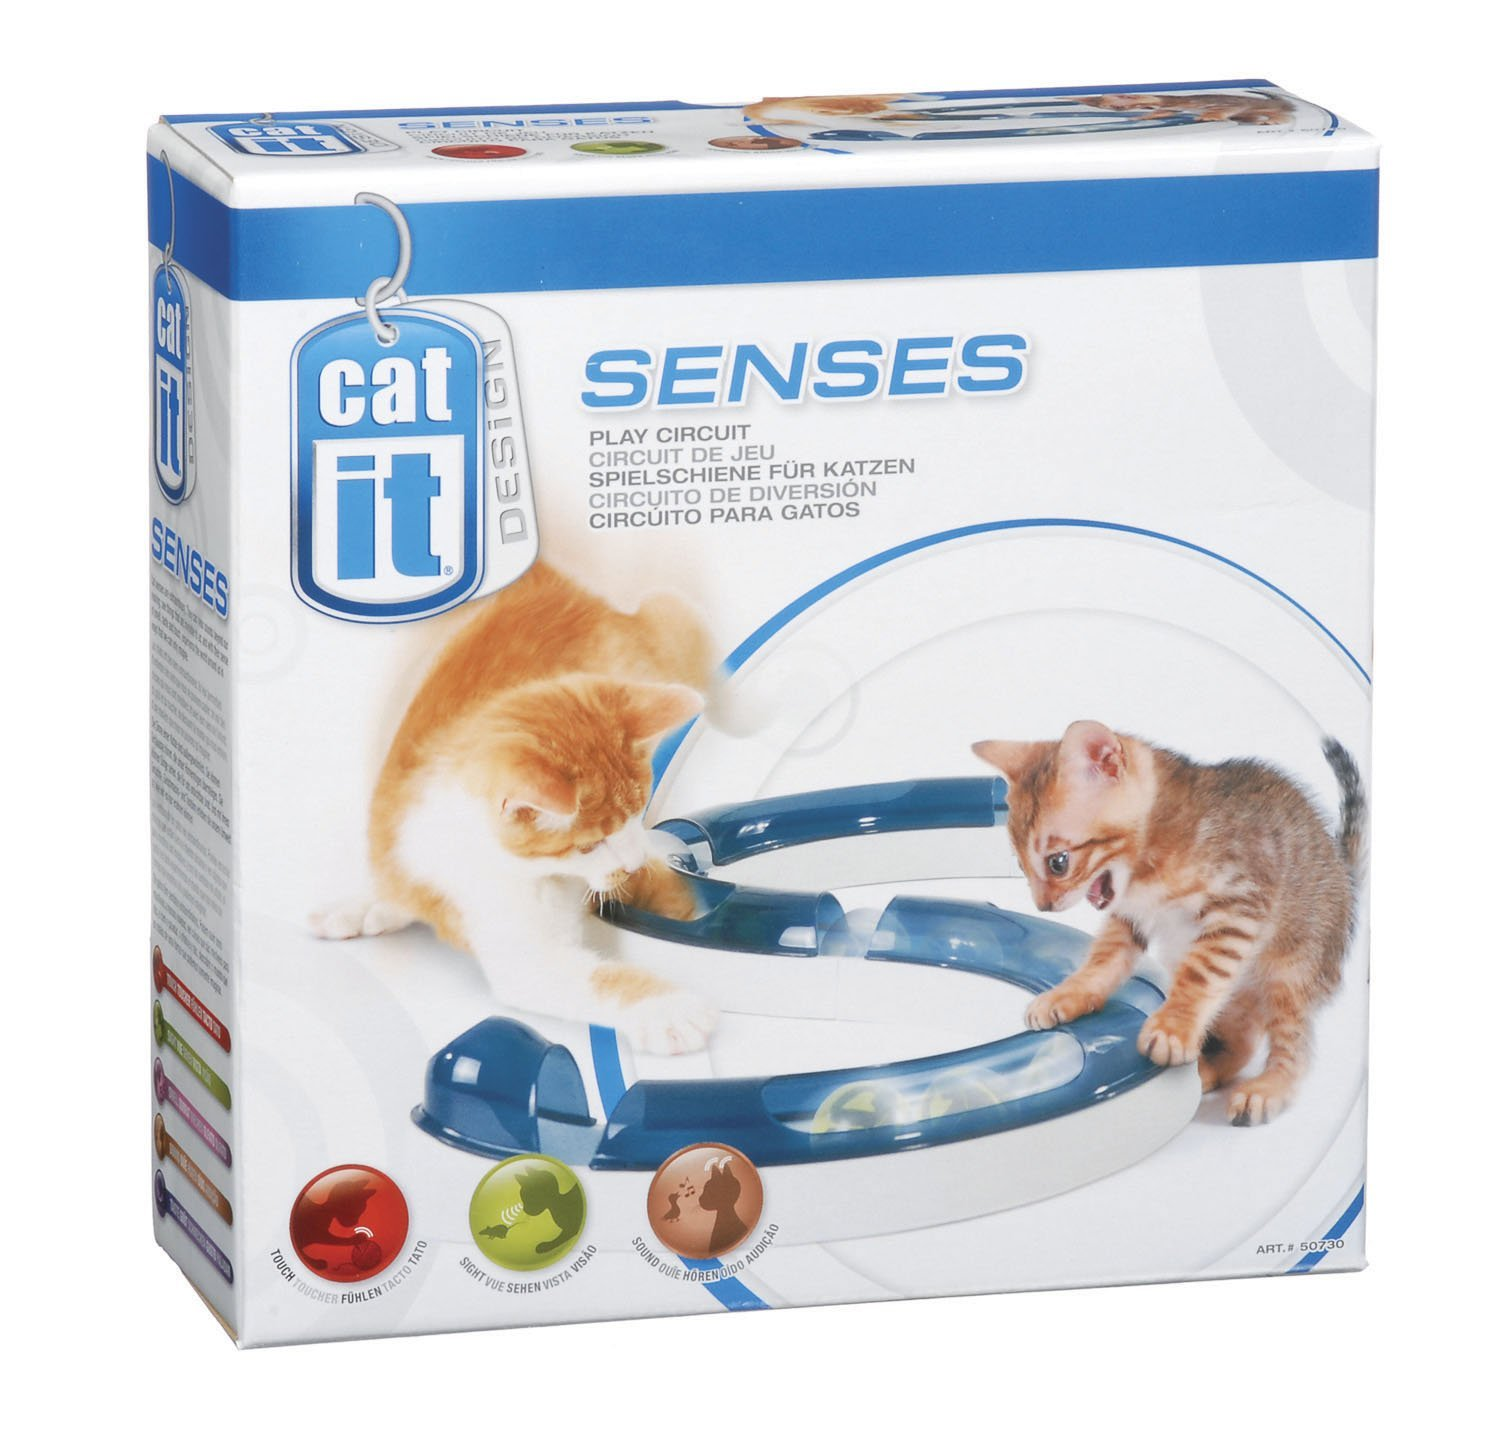 Catit Design Senses 2.0 Play Circuit - Available in 3 Sizes